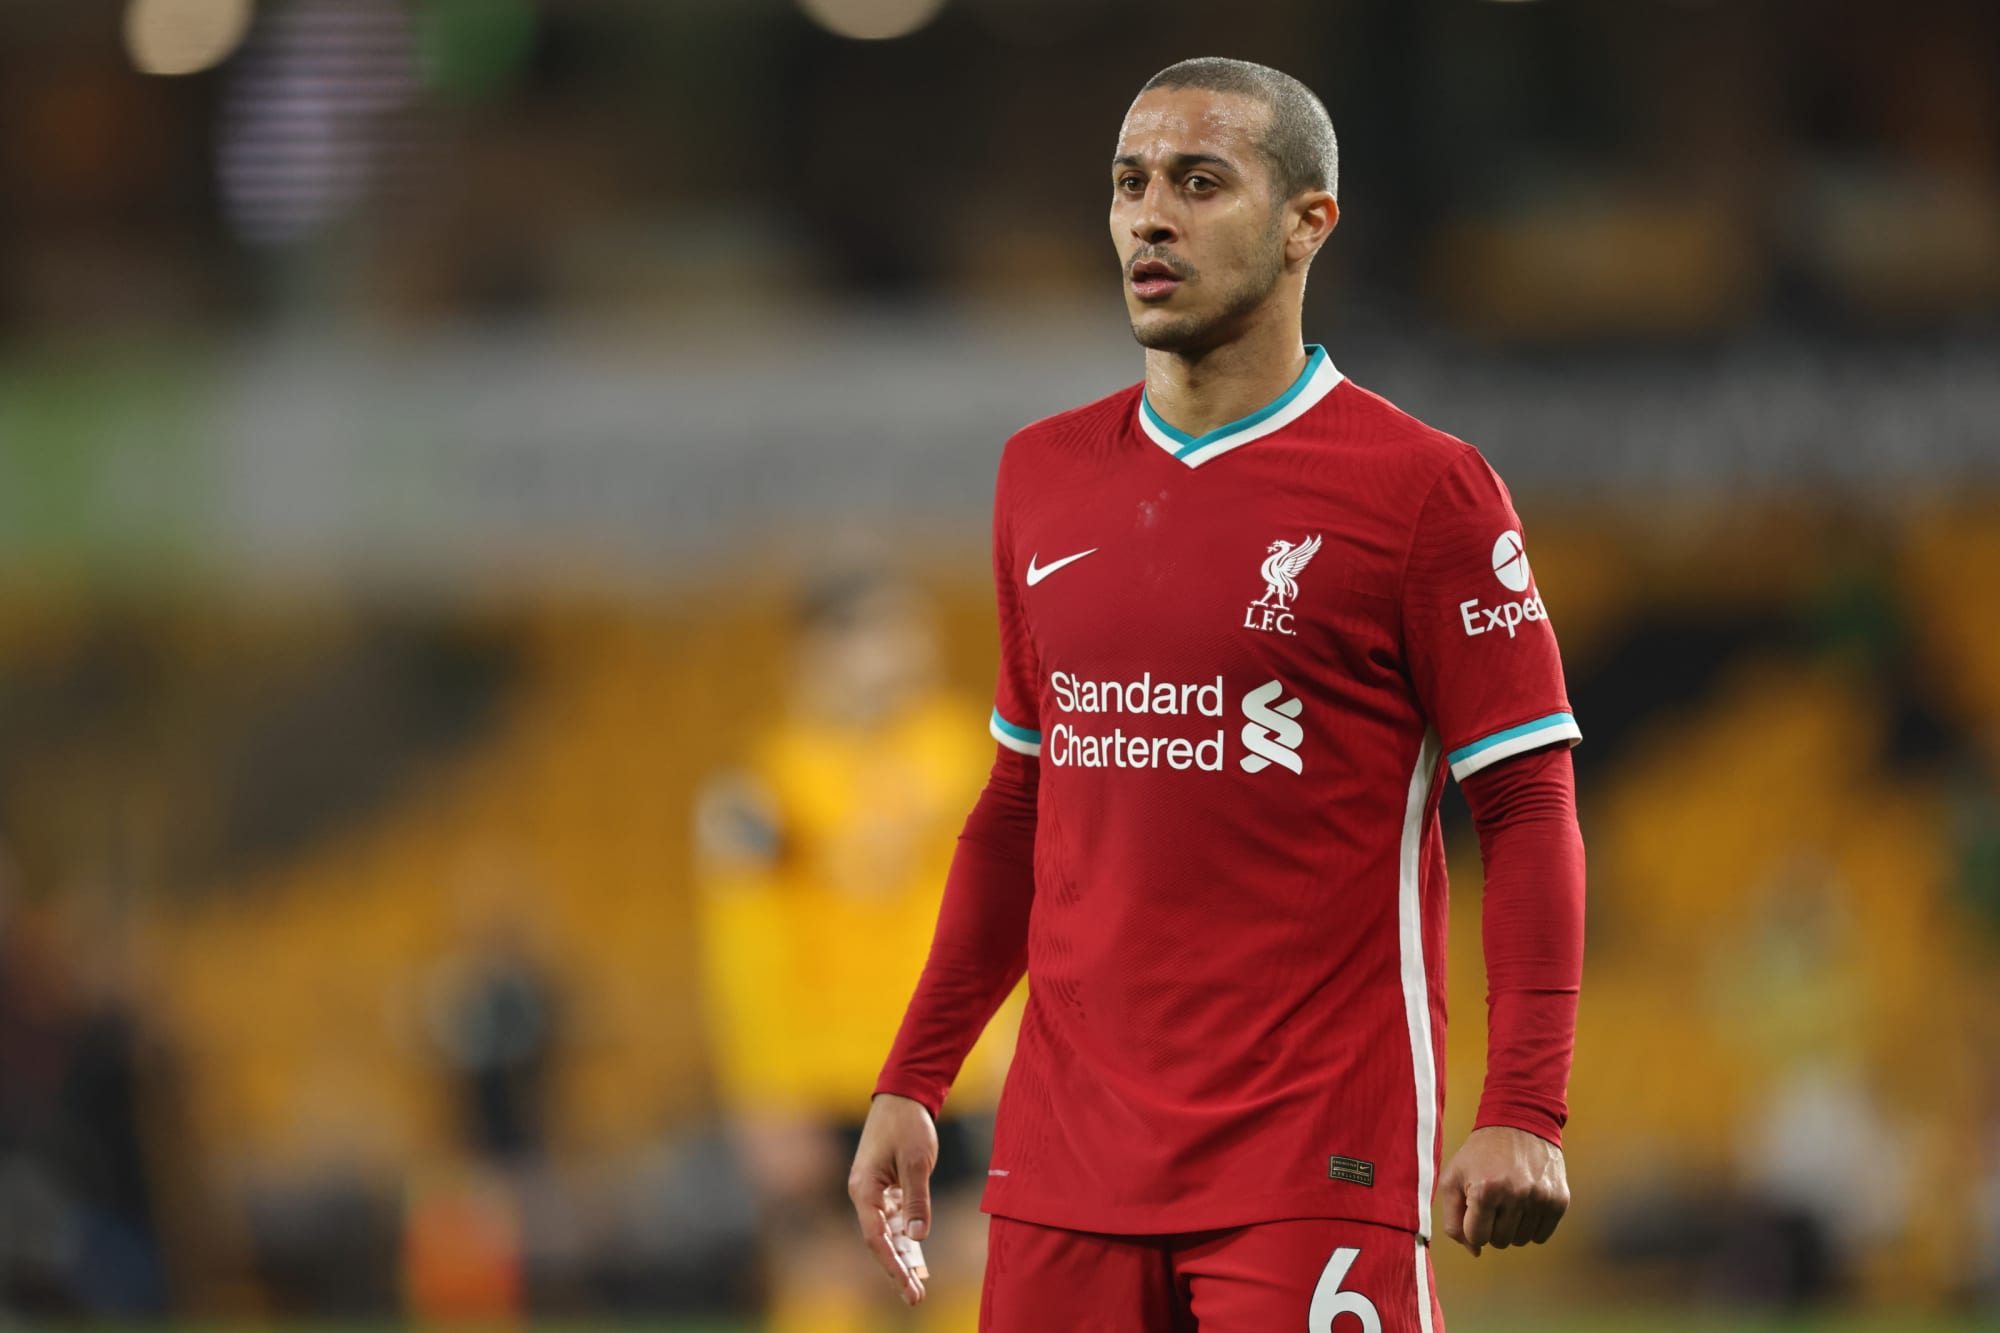 Real Madrid: 3 Liverpool players to watch closely in the first leg